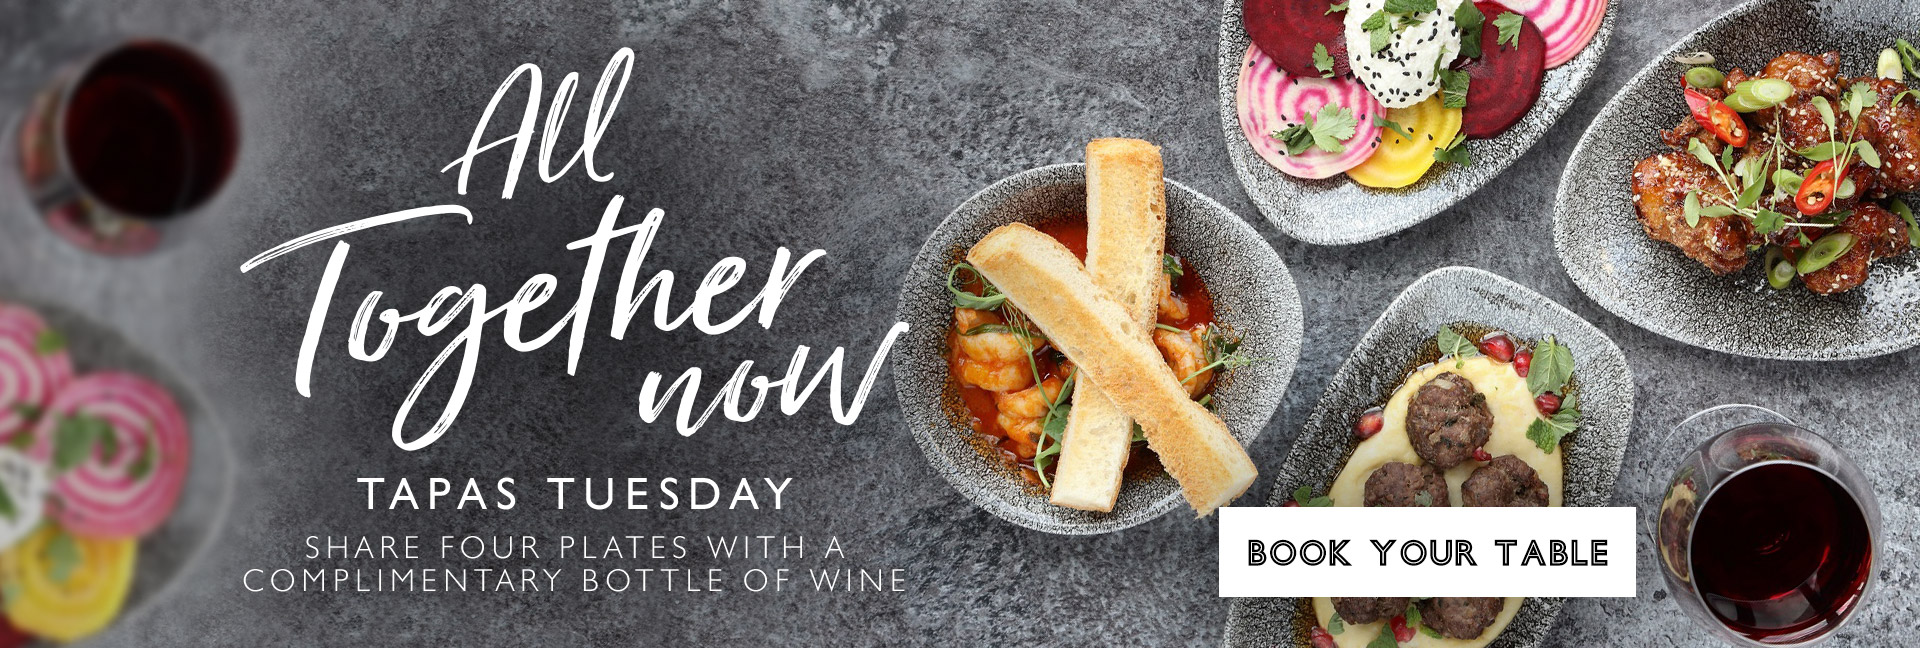 Tapas Tuesday at All Bar One Victoria - Book now